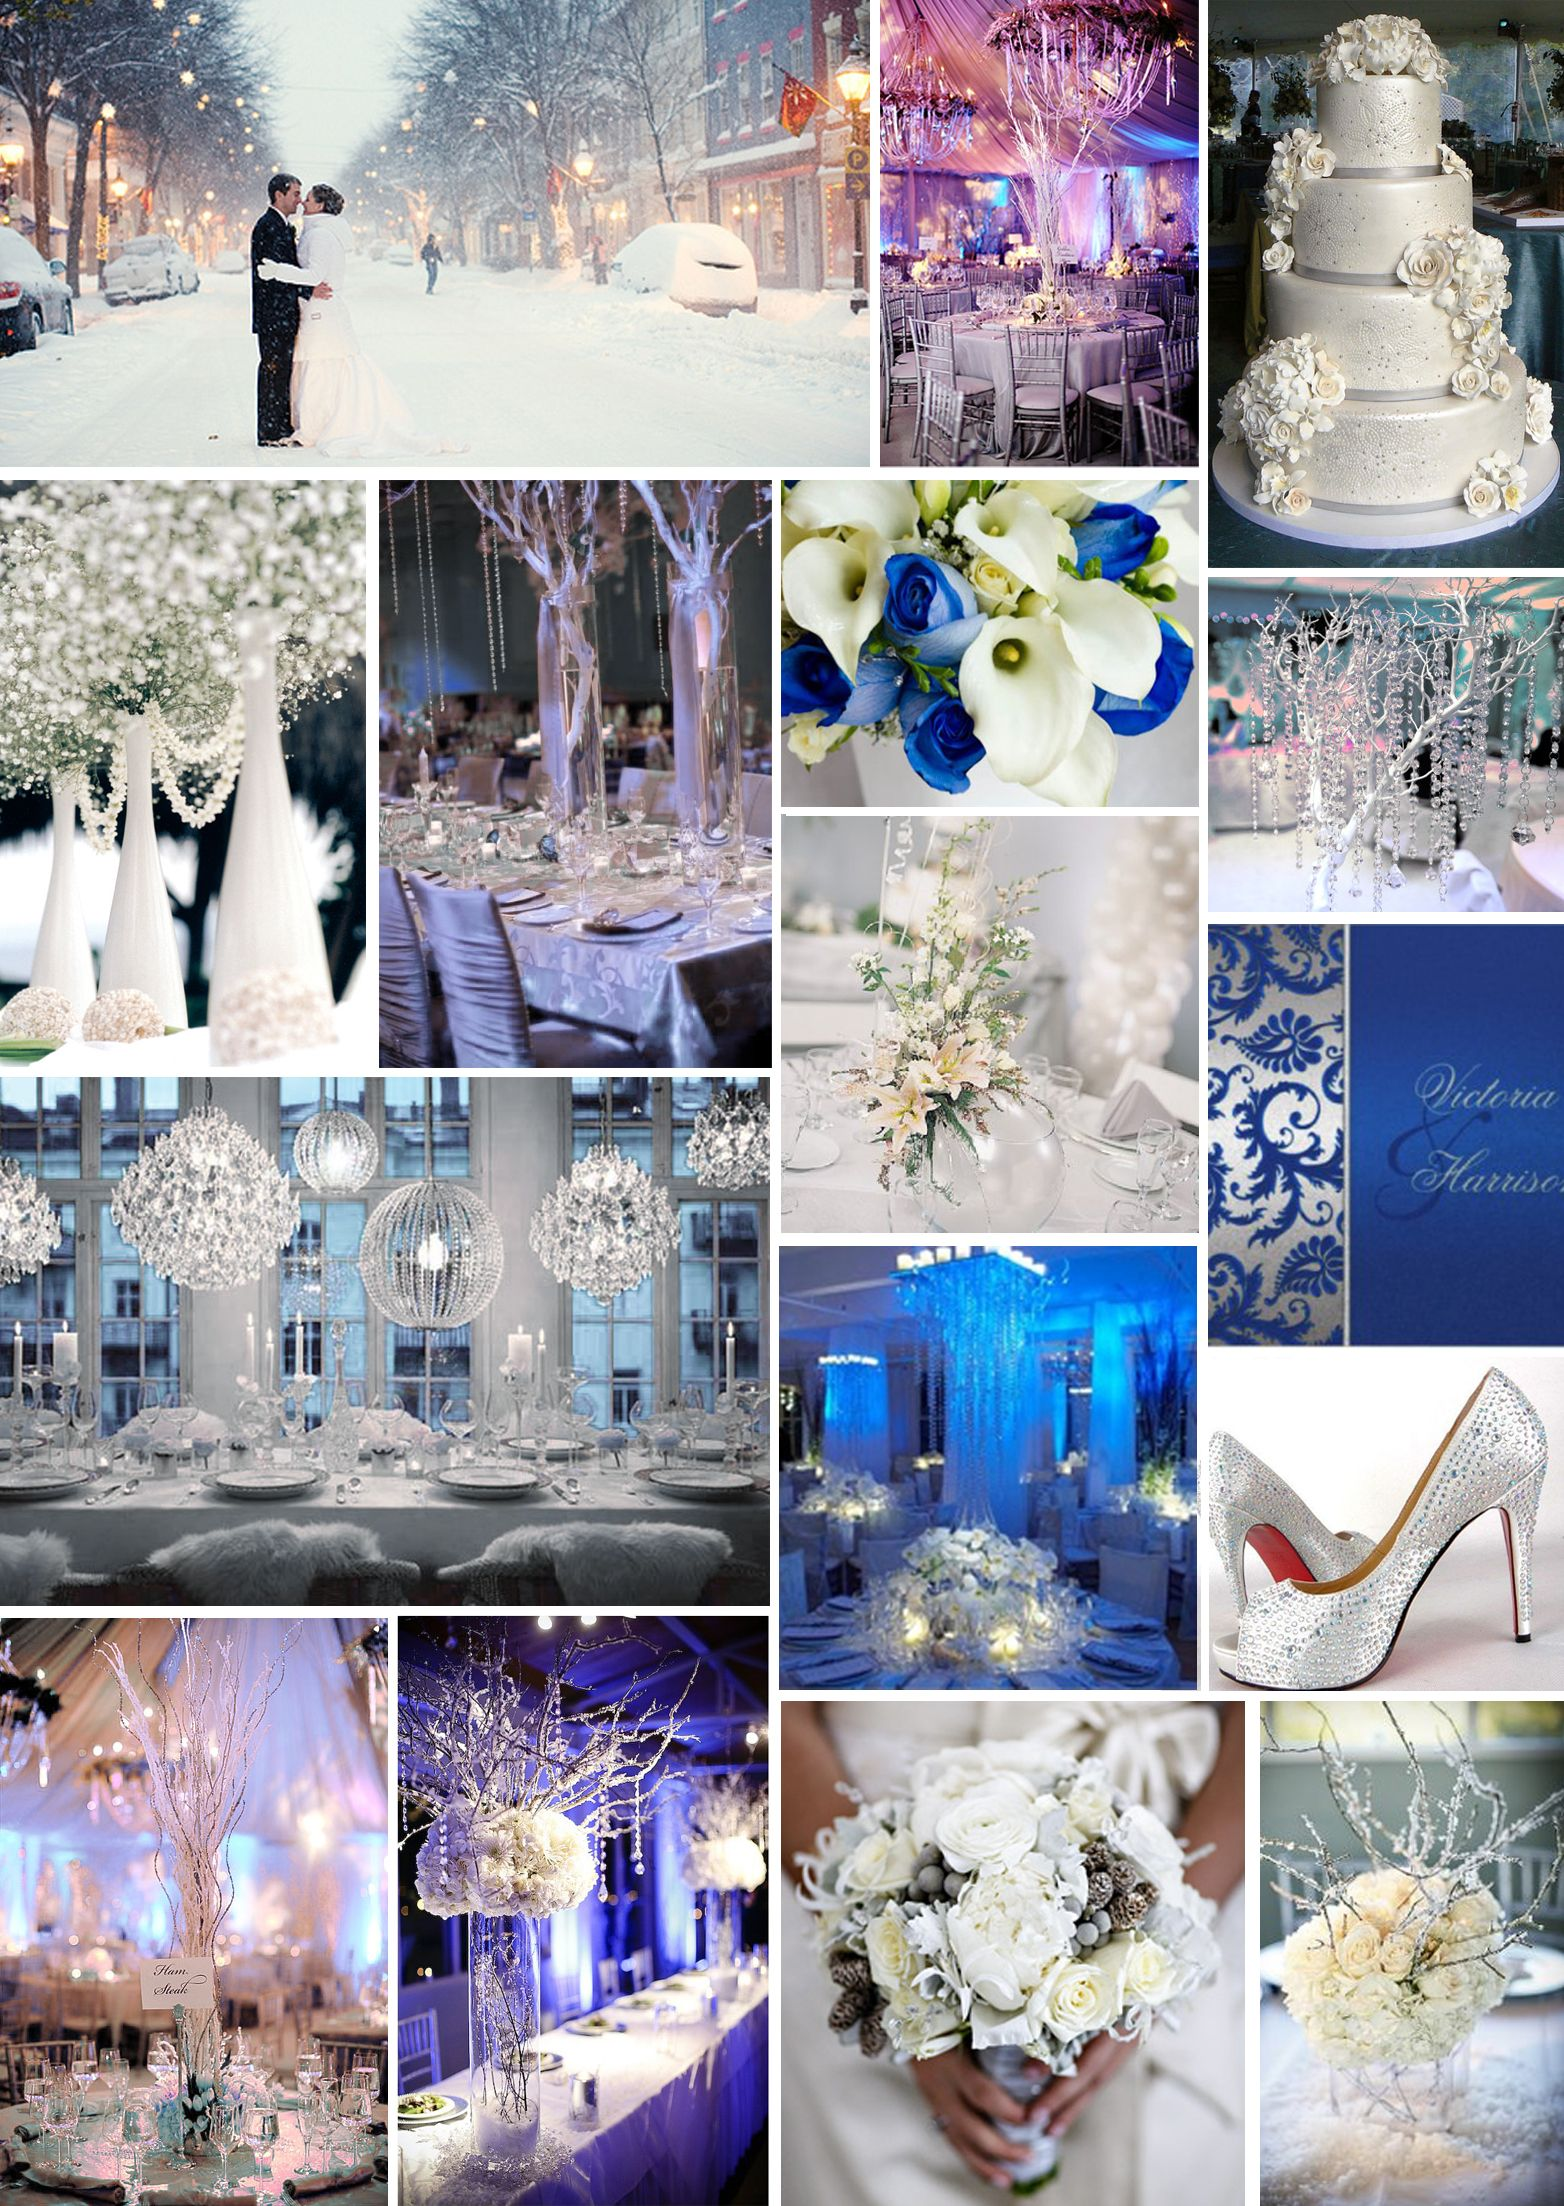 Hochzeit Farben Themed Thursday Winter Wonderland Get Maui Ed